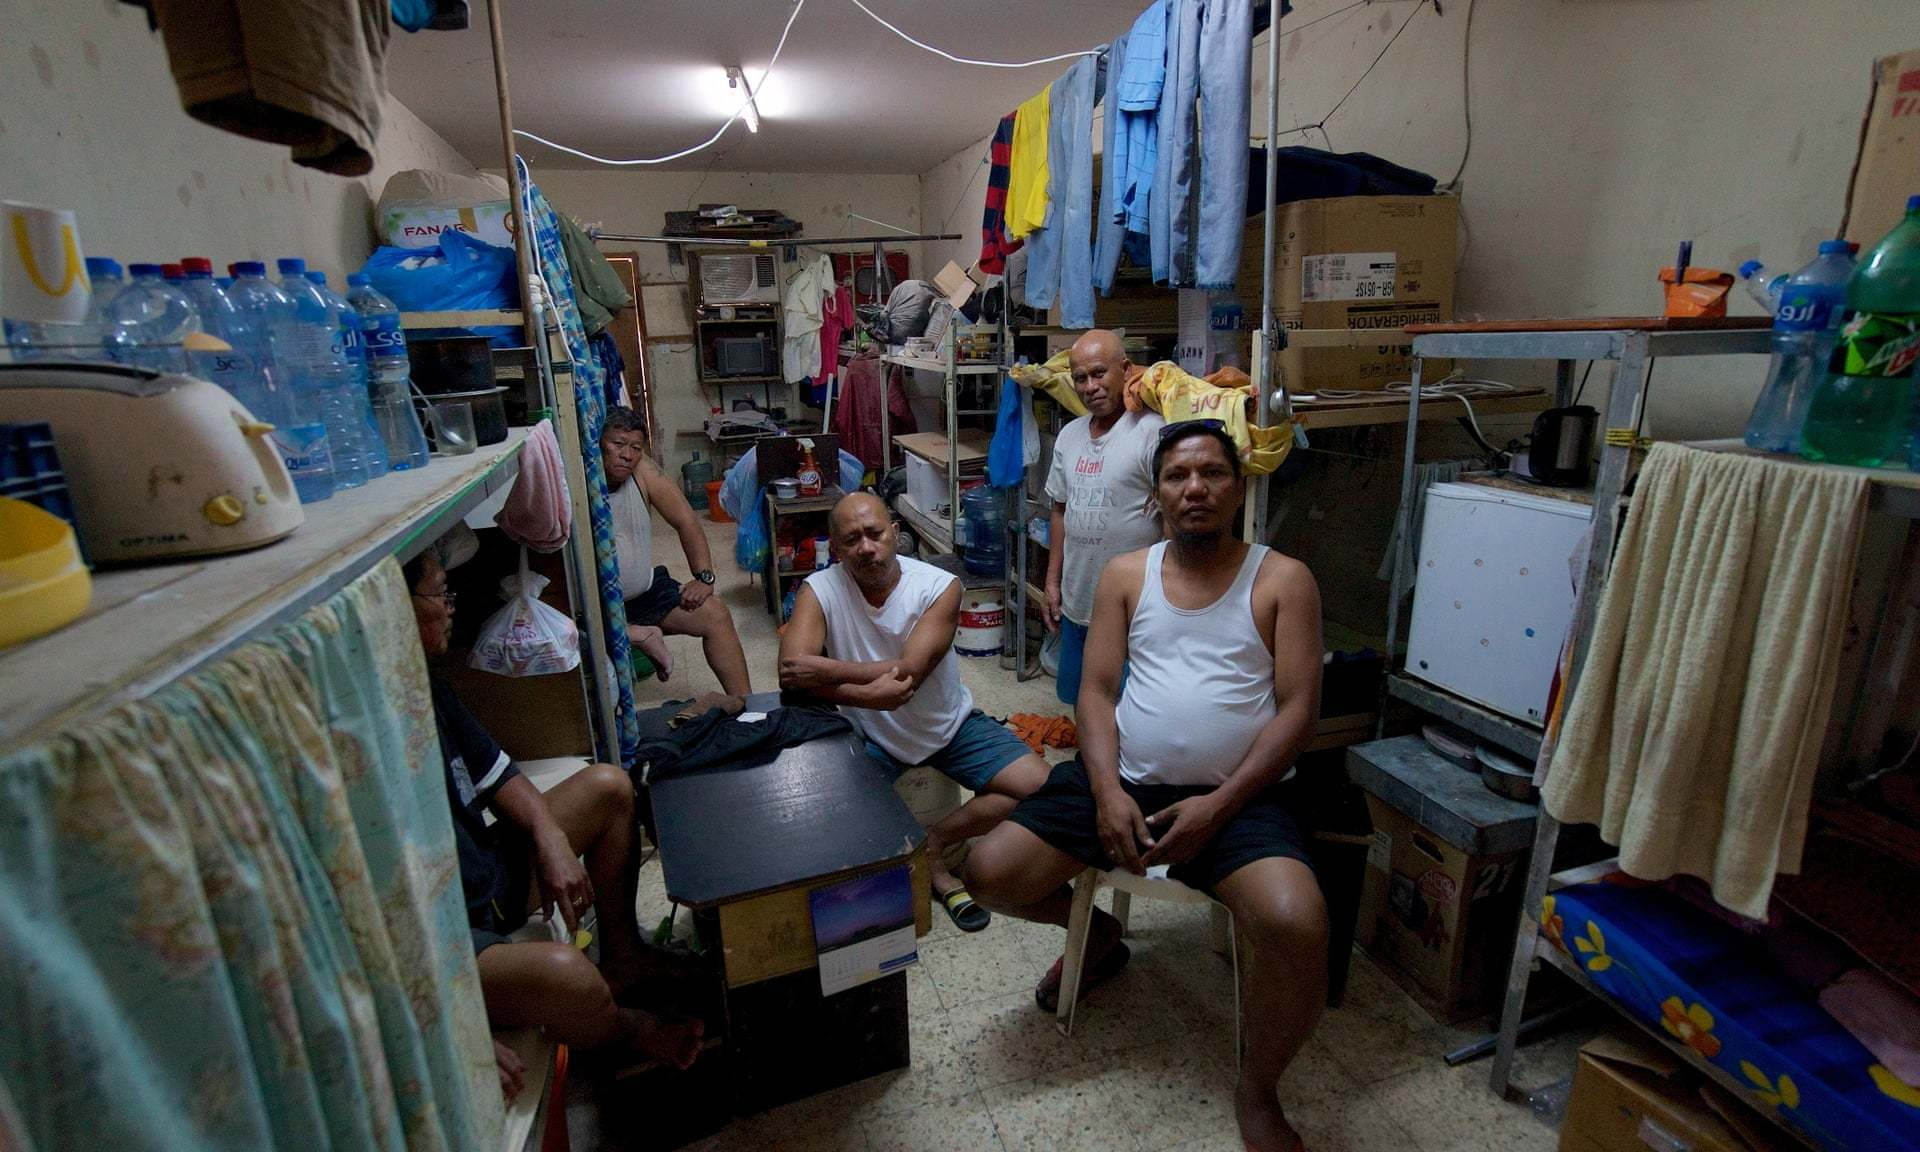 Pete Pattisson, Dormitory of Migrant Workers Living in the Industrial Area Outside Doha, (https://www.theguardian.com/global-development/2020/mar/20/covid-19-lockdown-turns-qatars-largest-migrant-camp-into-virtual-prison)